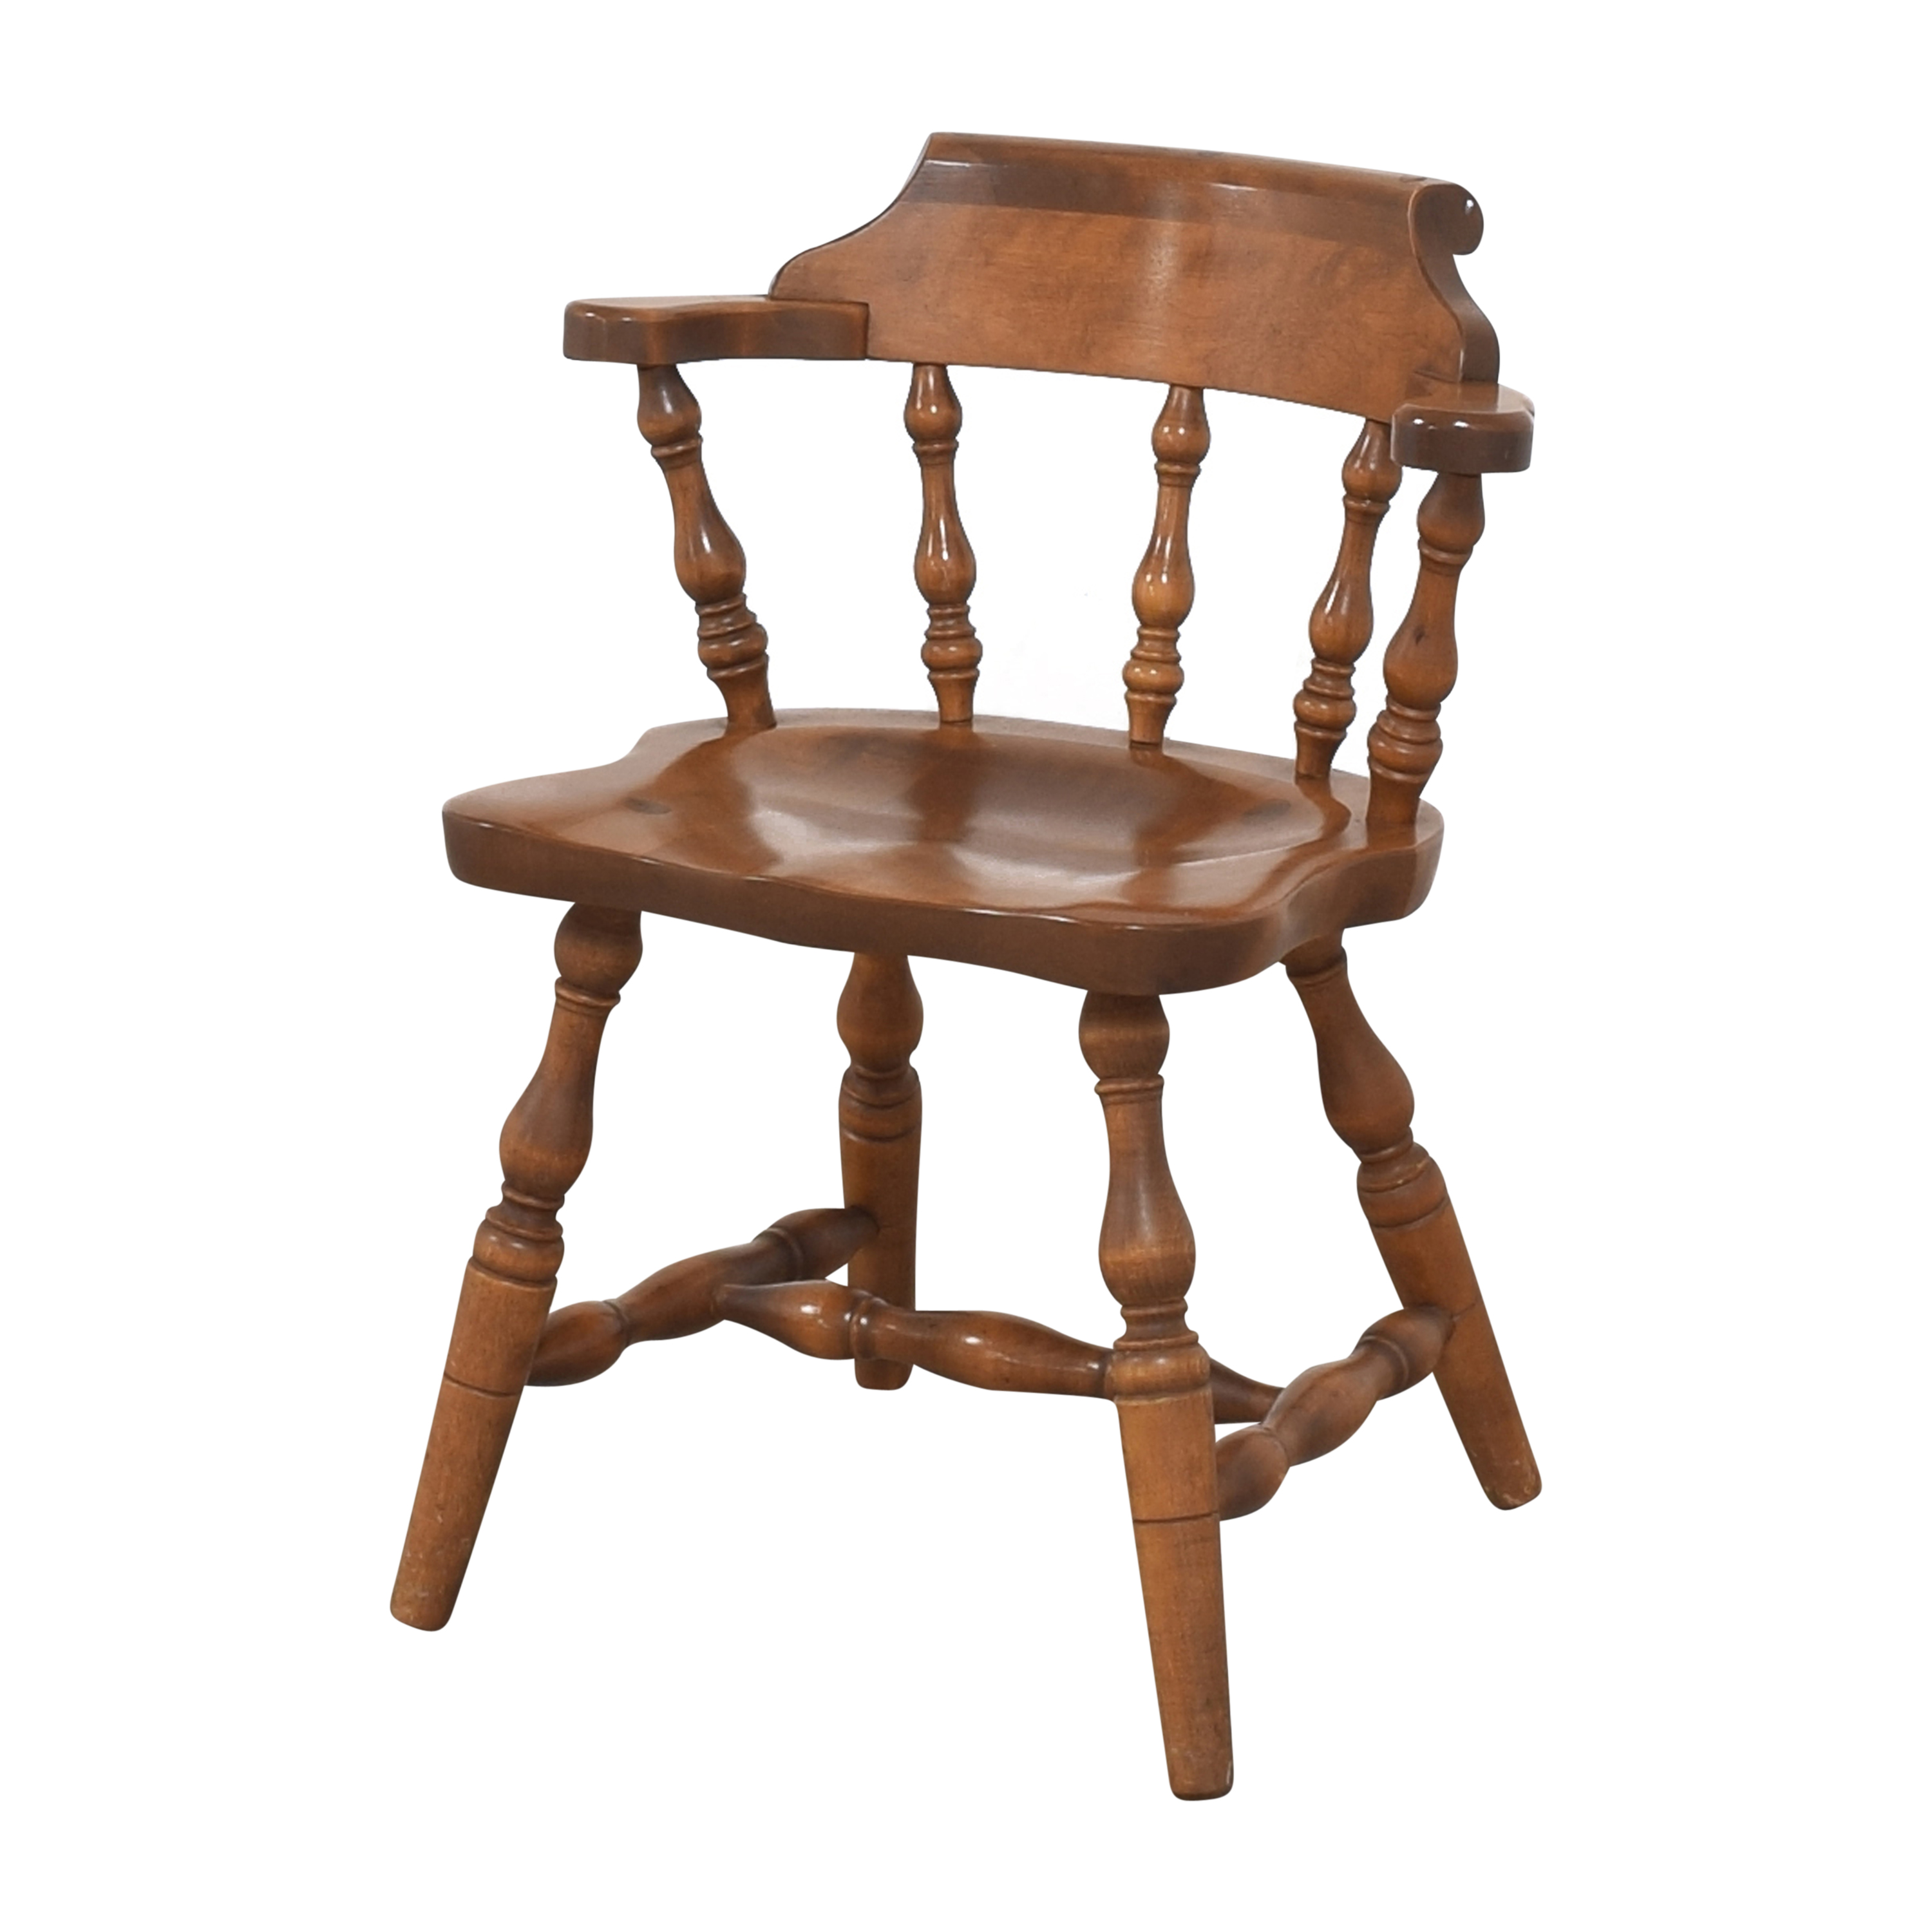 S. Bent & Bros S. Bent & Bros Colonial Windsor Captain's Chairs coupon